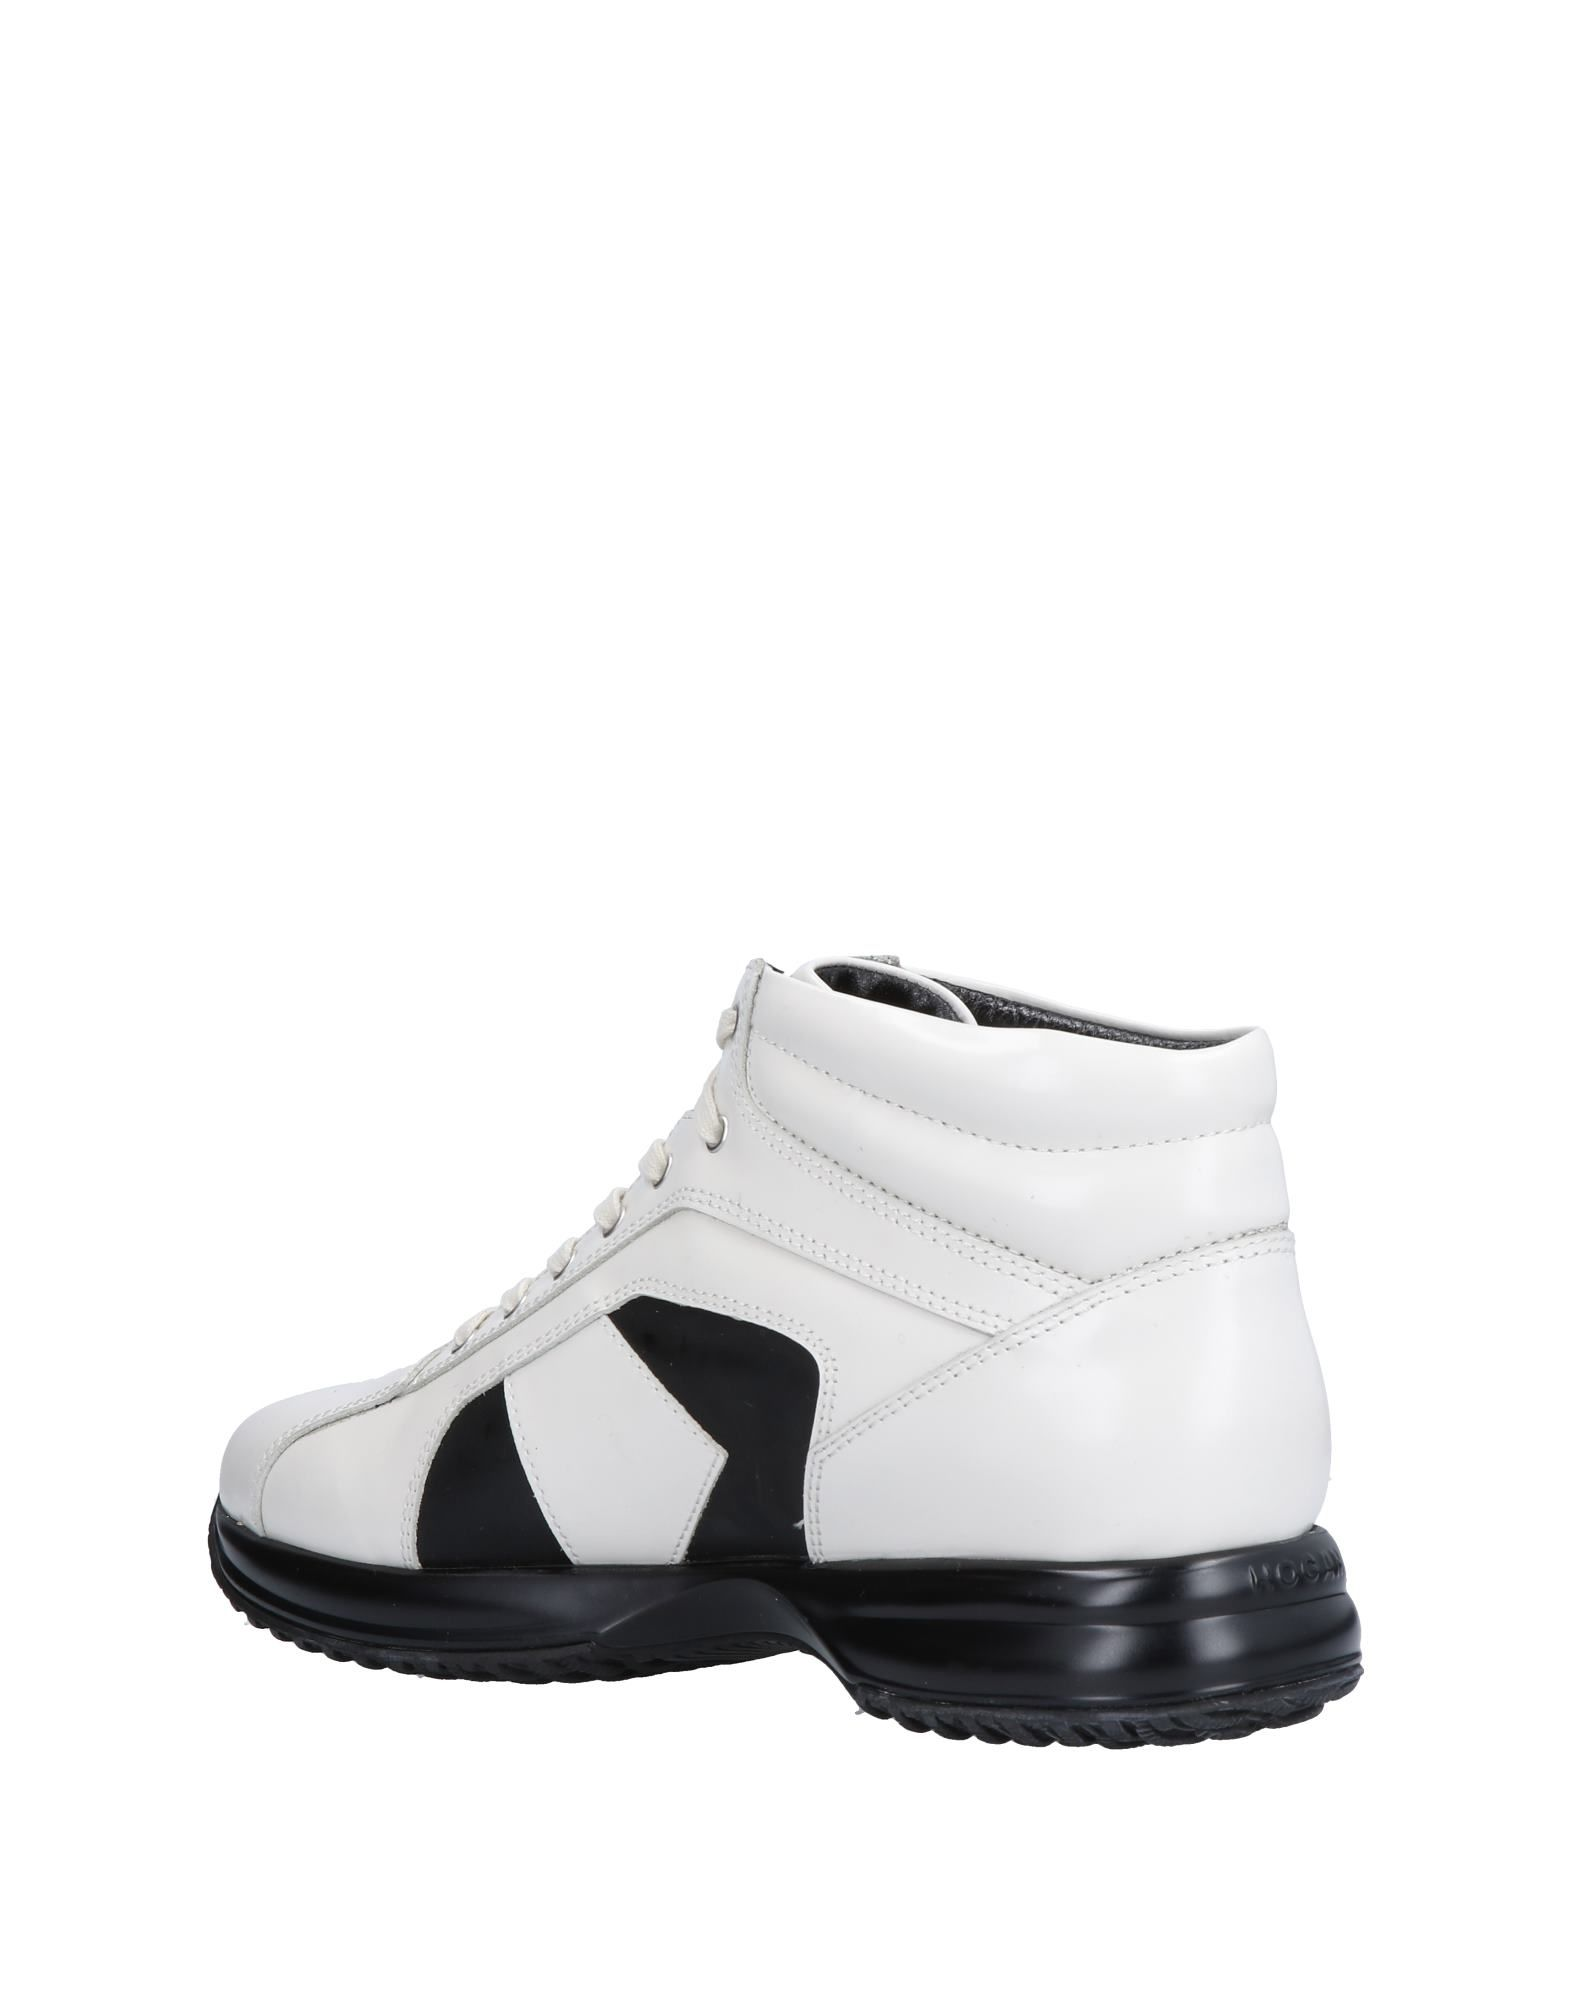 Hogan By Karl Lagerfeld Sneakers - Women Hogan Hogan Hogan By Karl Lagerfeld Sneakers online on  Canada - 11510814MI 63ca1a